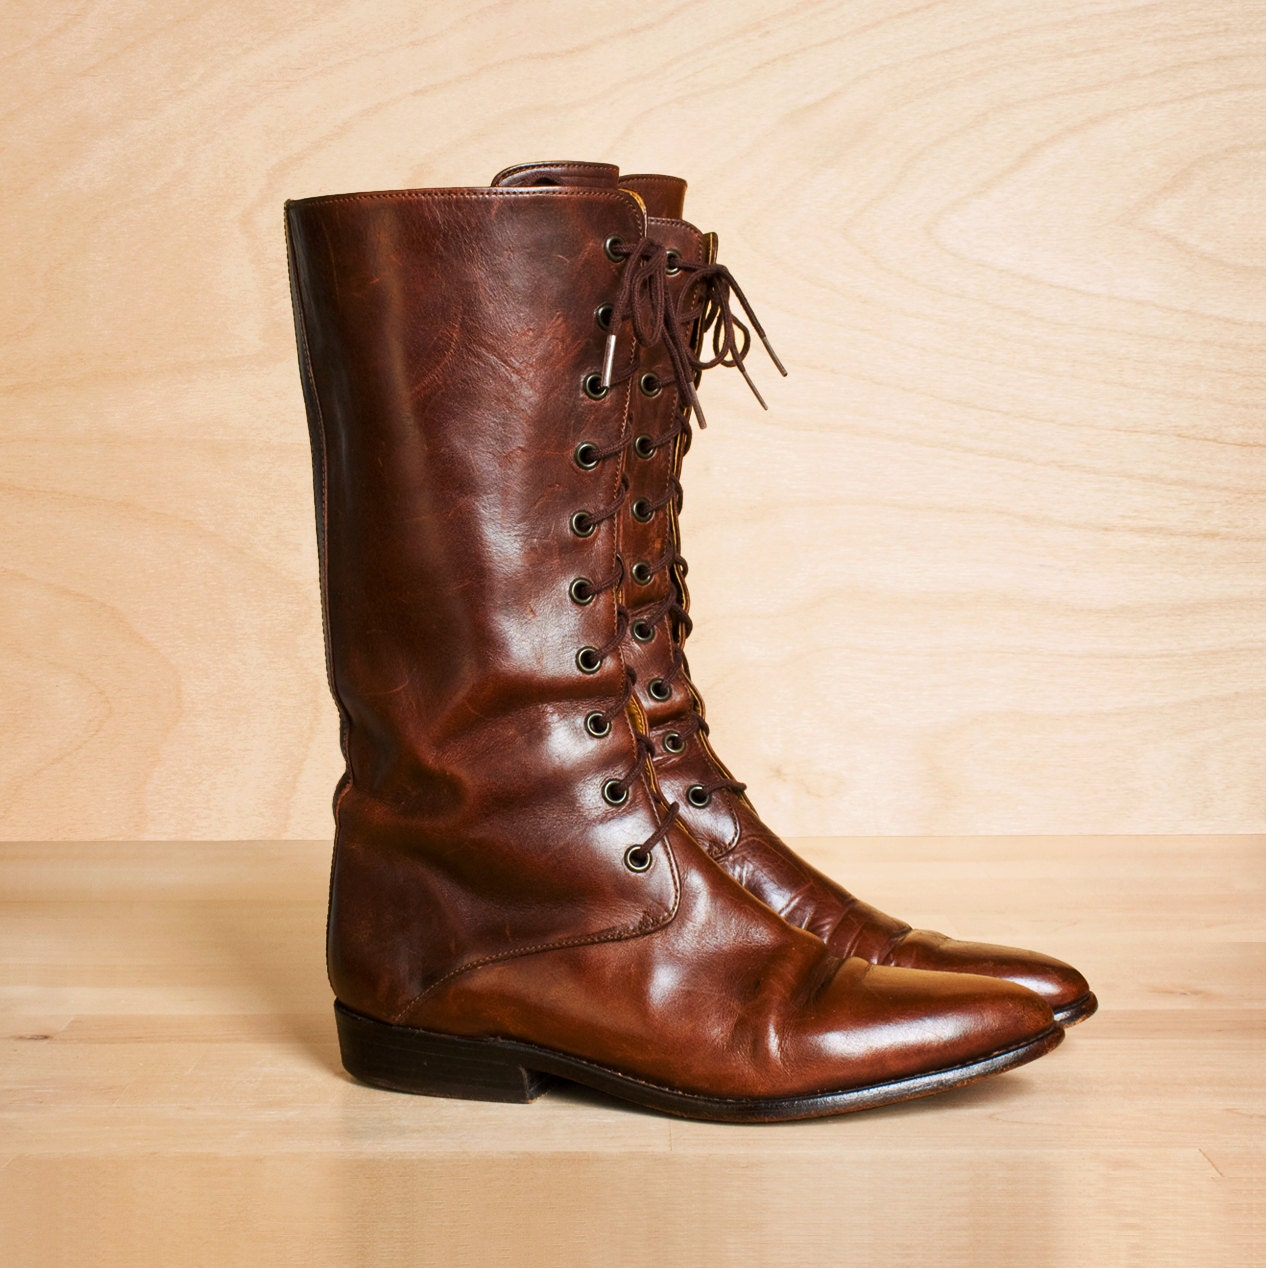 Vintage Cole Haan Lace Up Riding Boots 7 5 7 By Kenaione